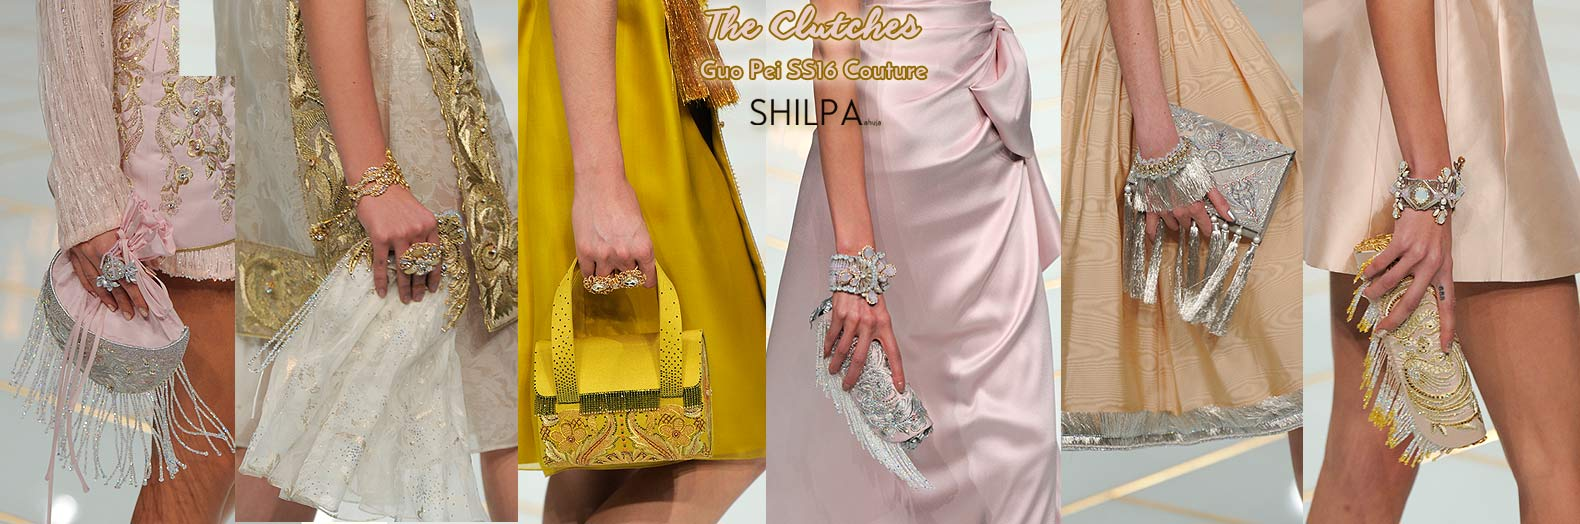 guo-pei-spring-summer-2016-couture-show-clutches-handbag-accessories